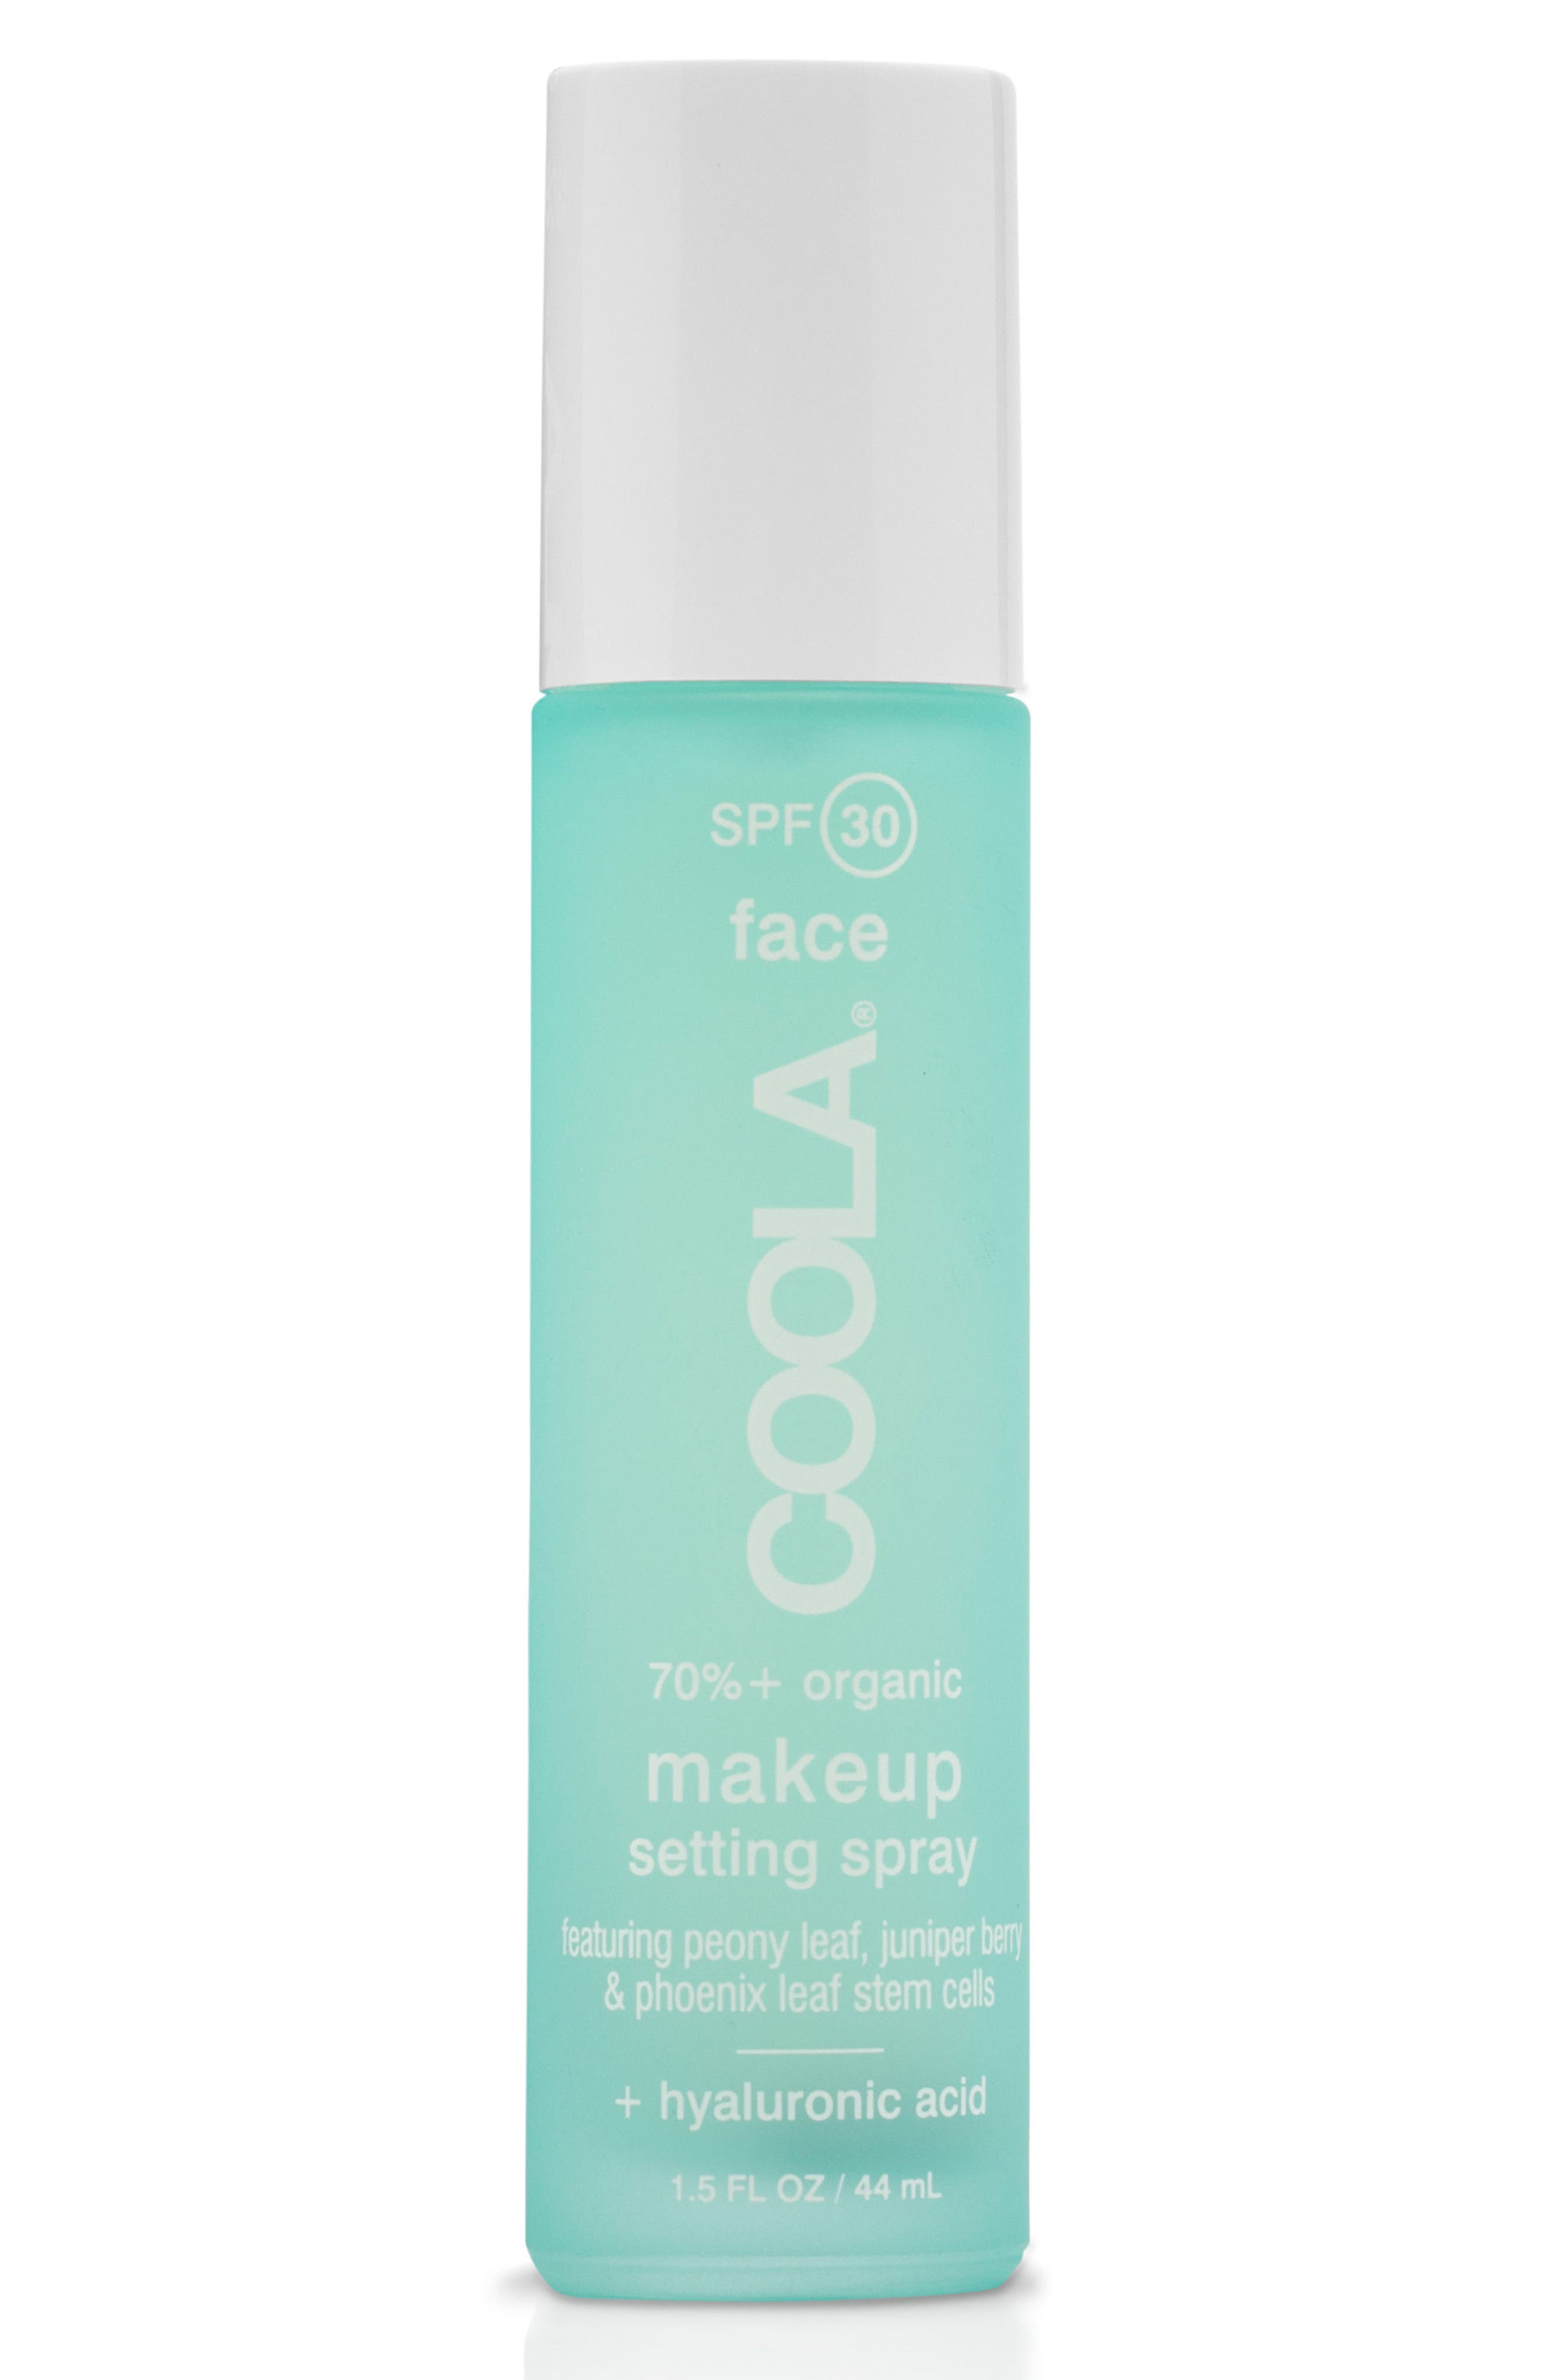 COOLA® Suncare Classic SPF 30 Makeup Setting Spray